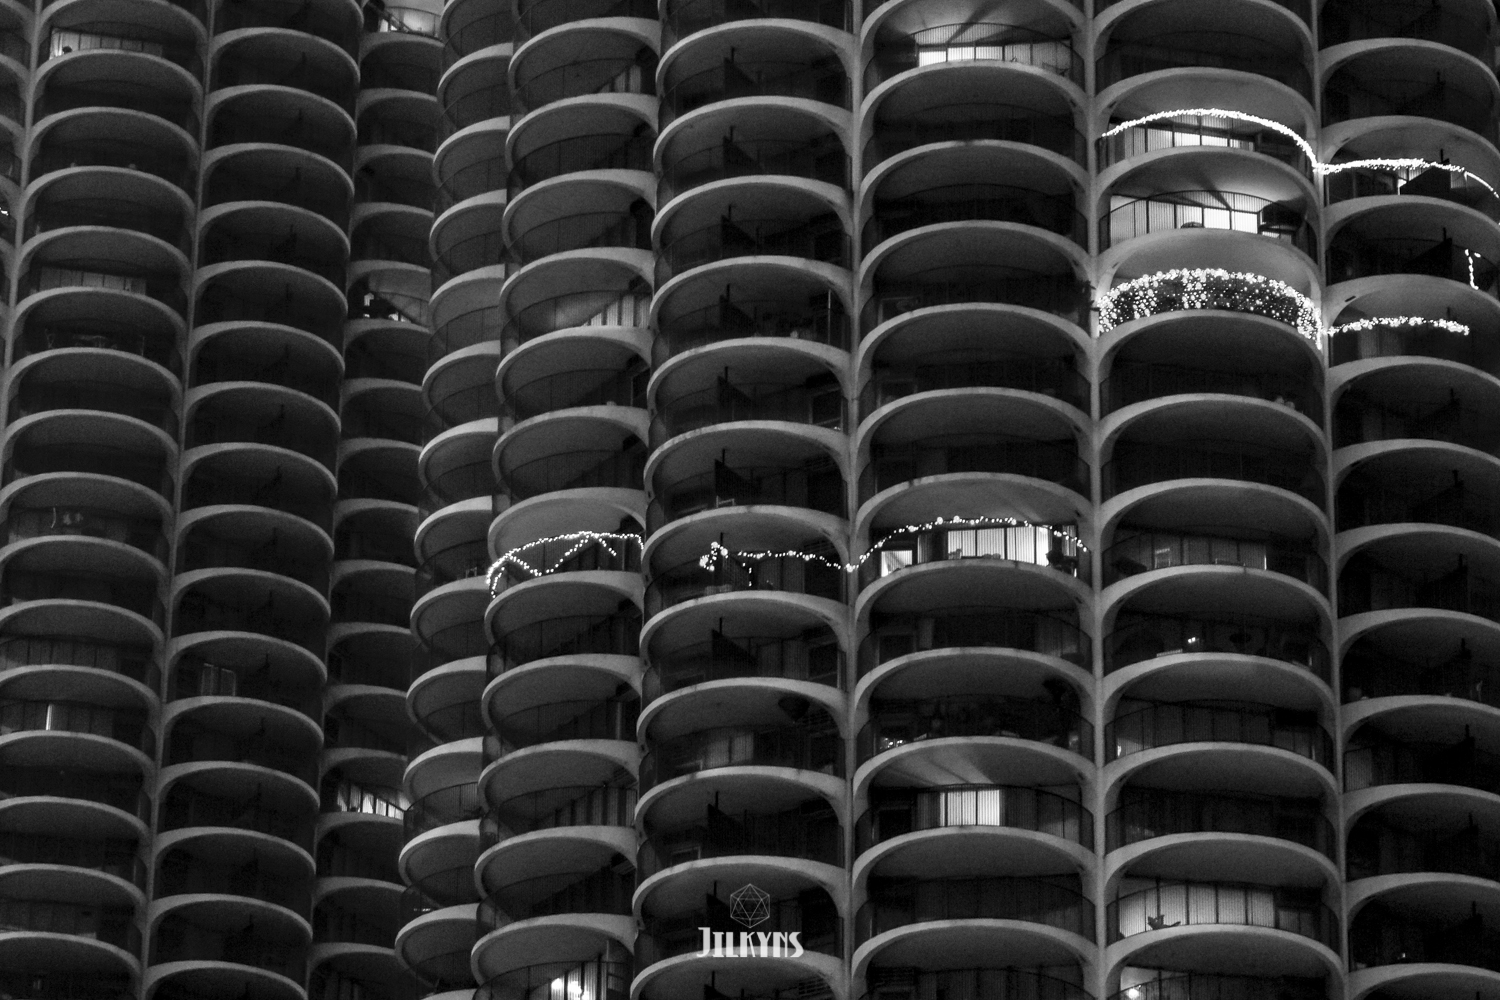 Marina Towers Chicago photo by Jilkyns